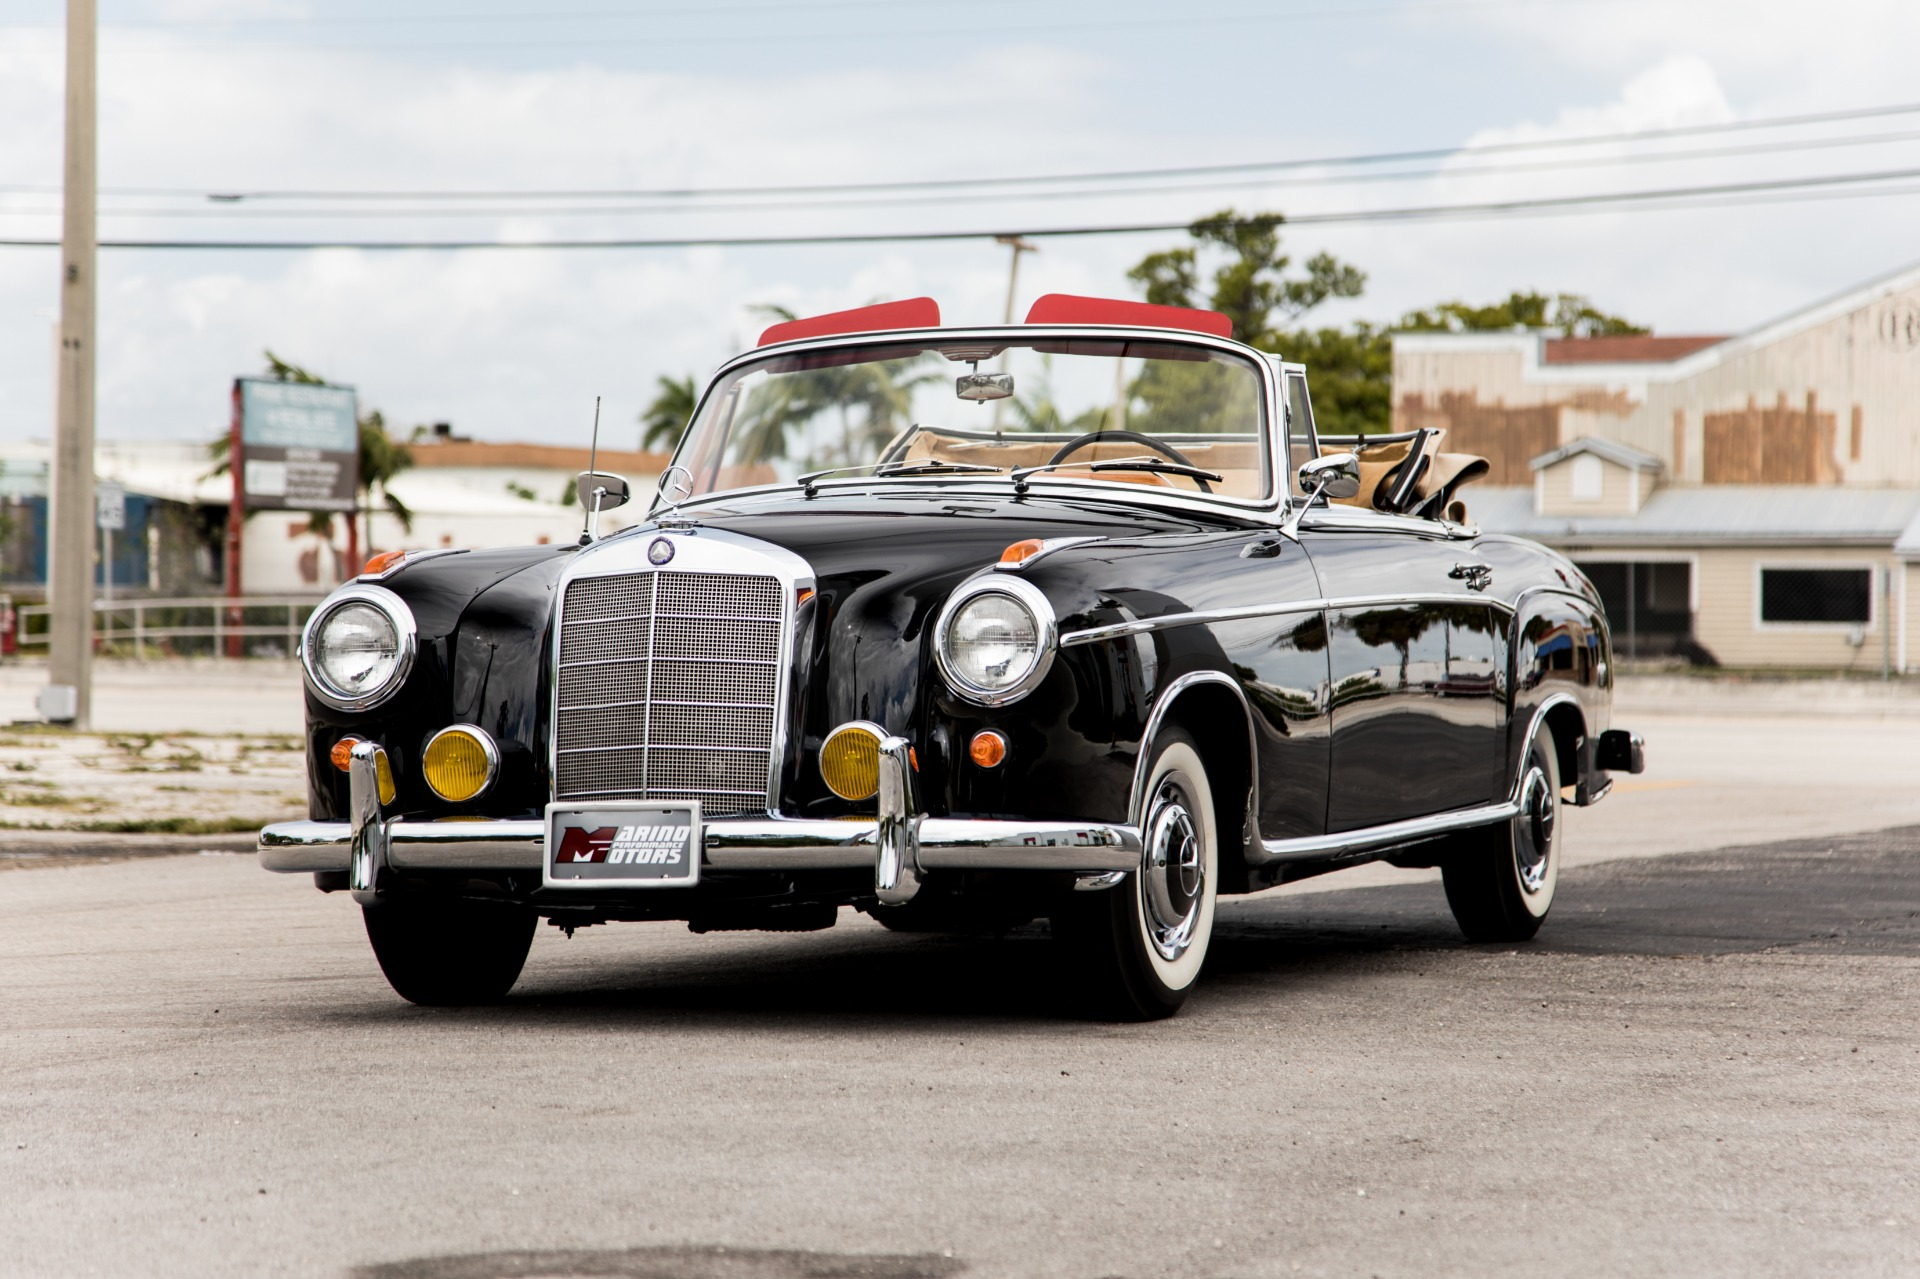 Used-1959-Mercedes-Benz-220s